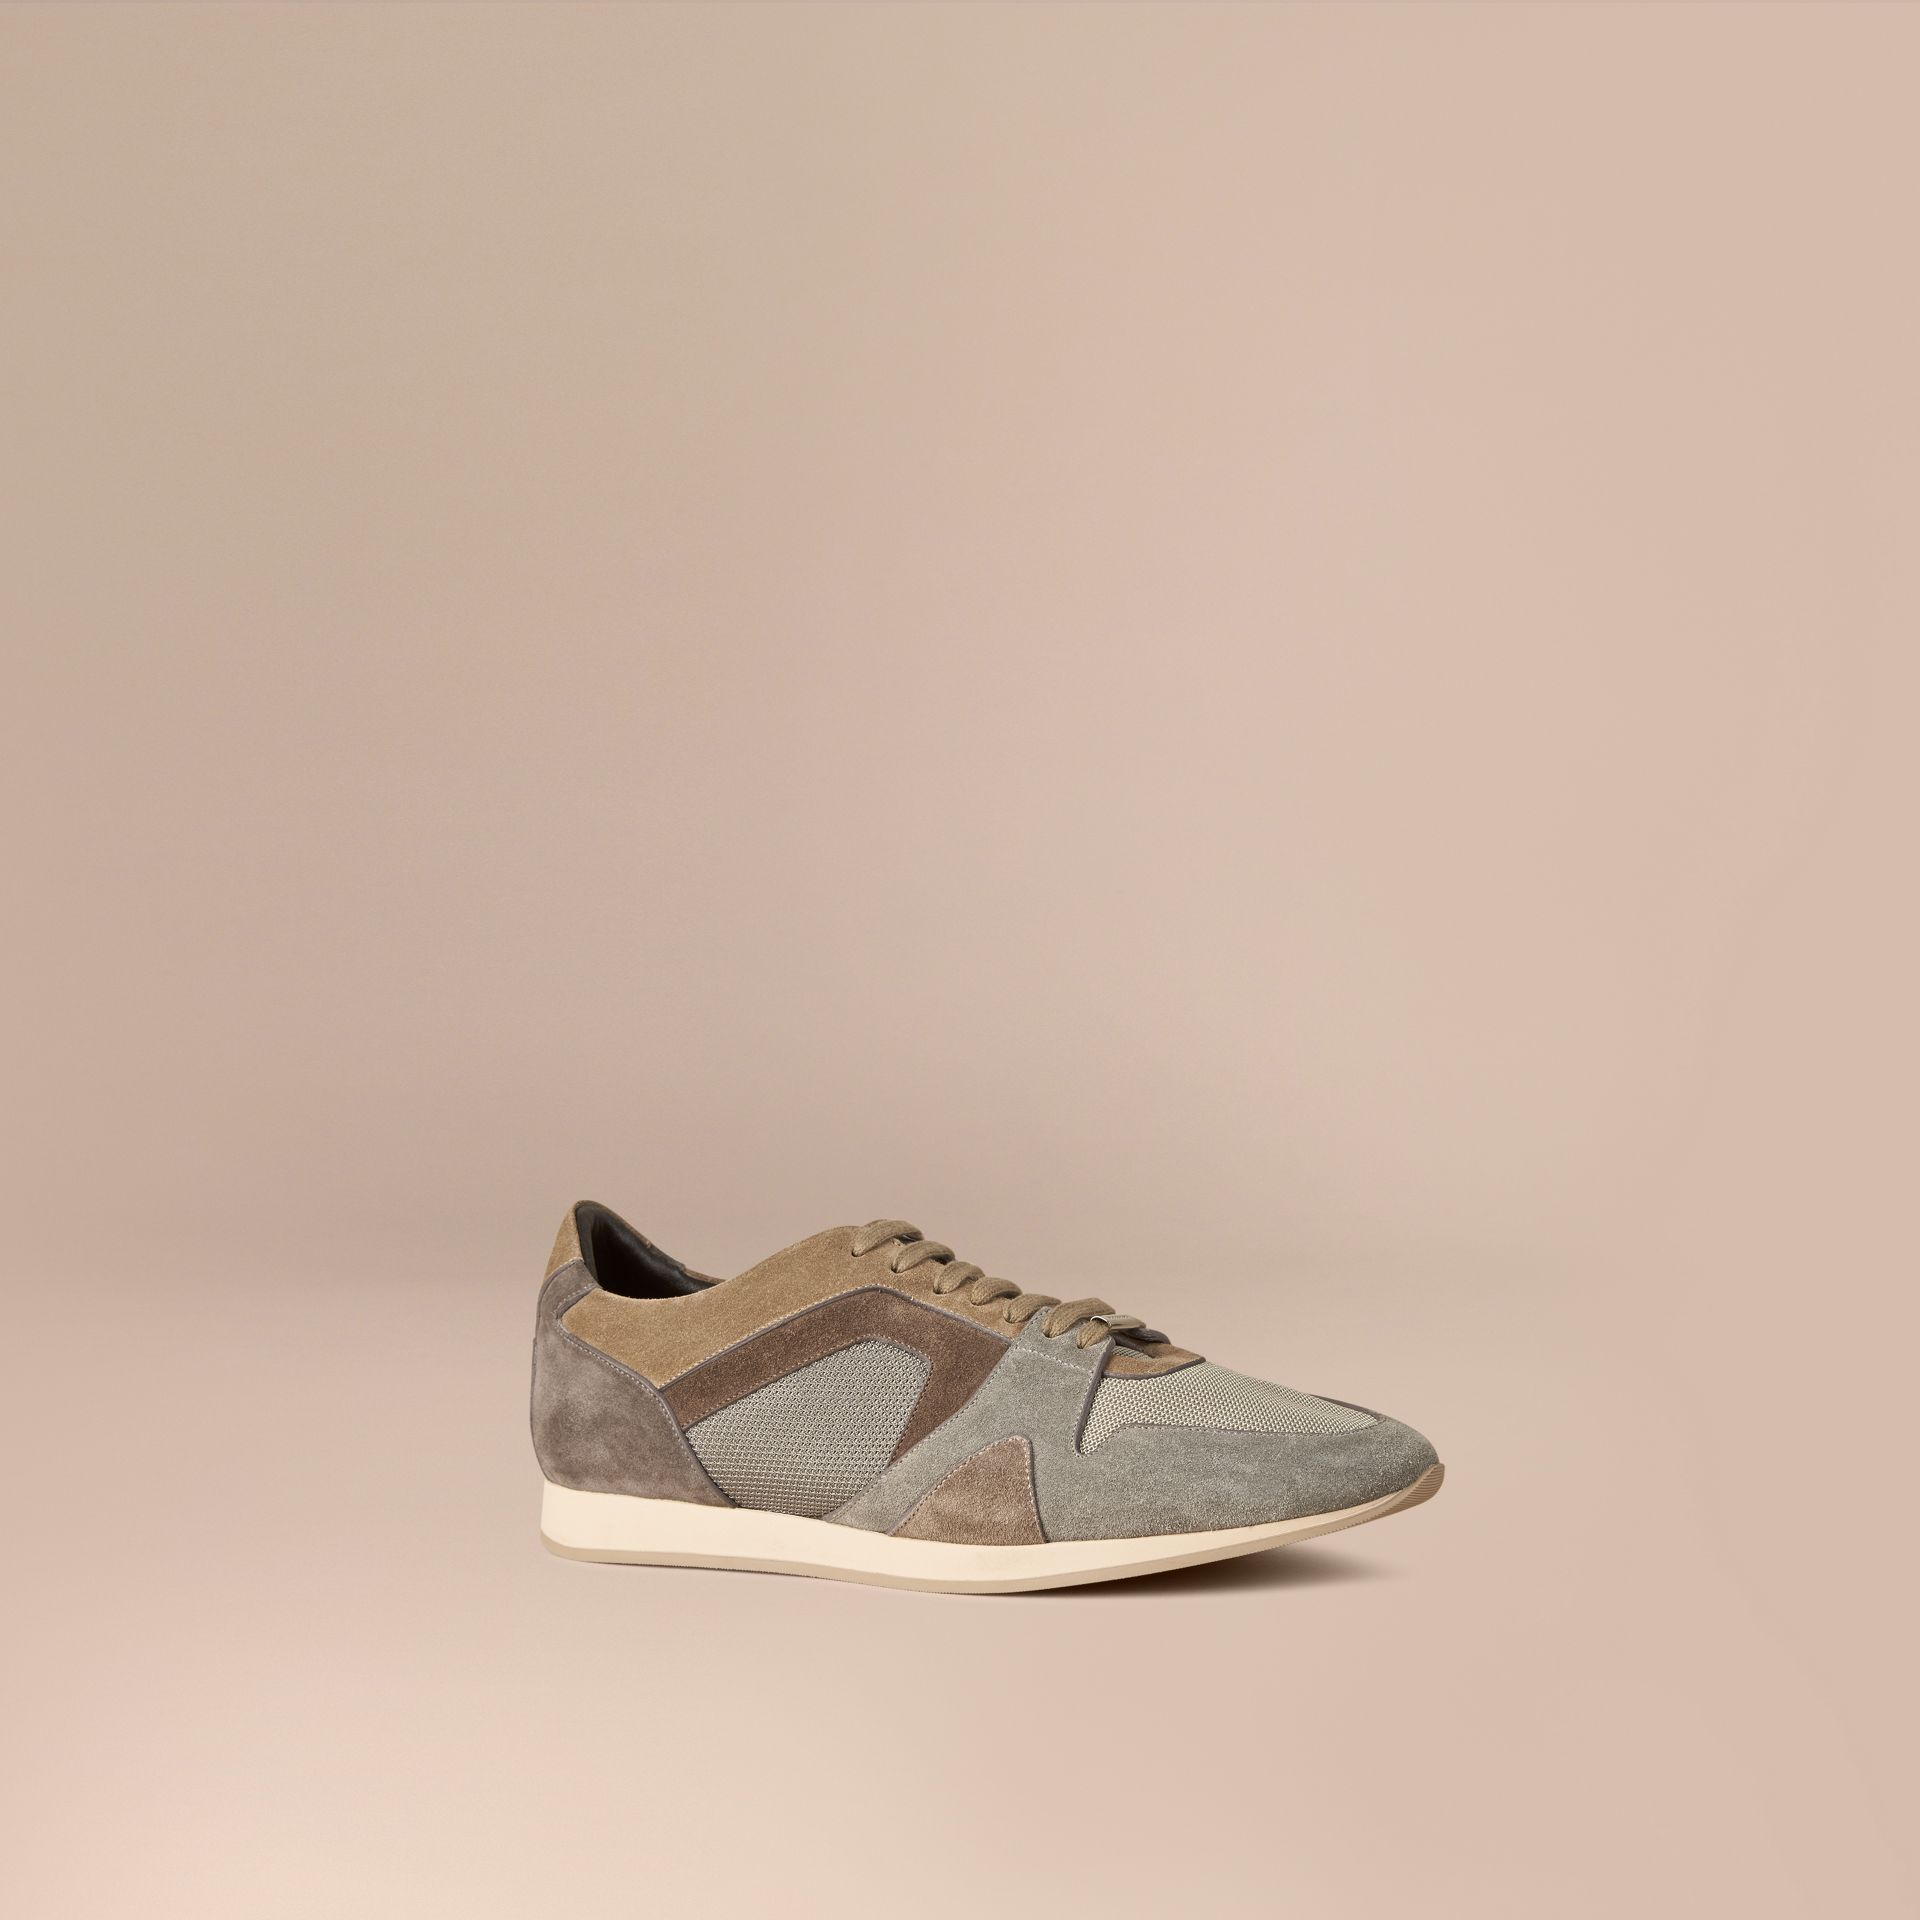 Greystone The Field Sneaker in Colour Block Suede and Mesh Greystone - gallery image 1